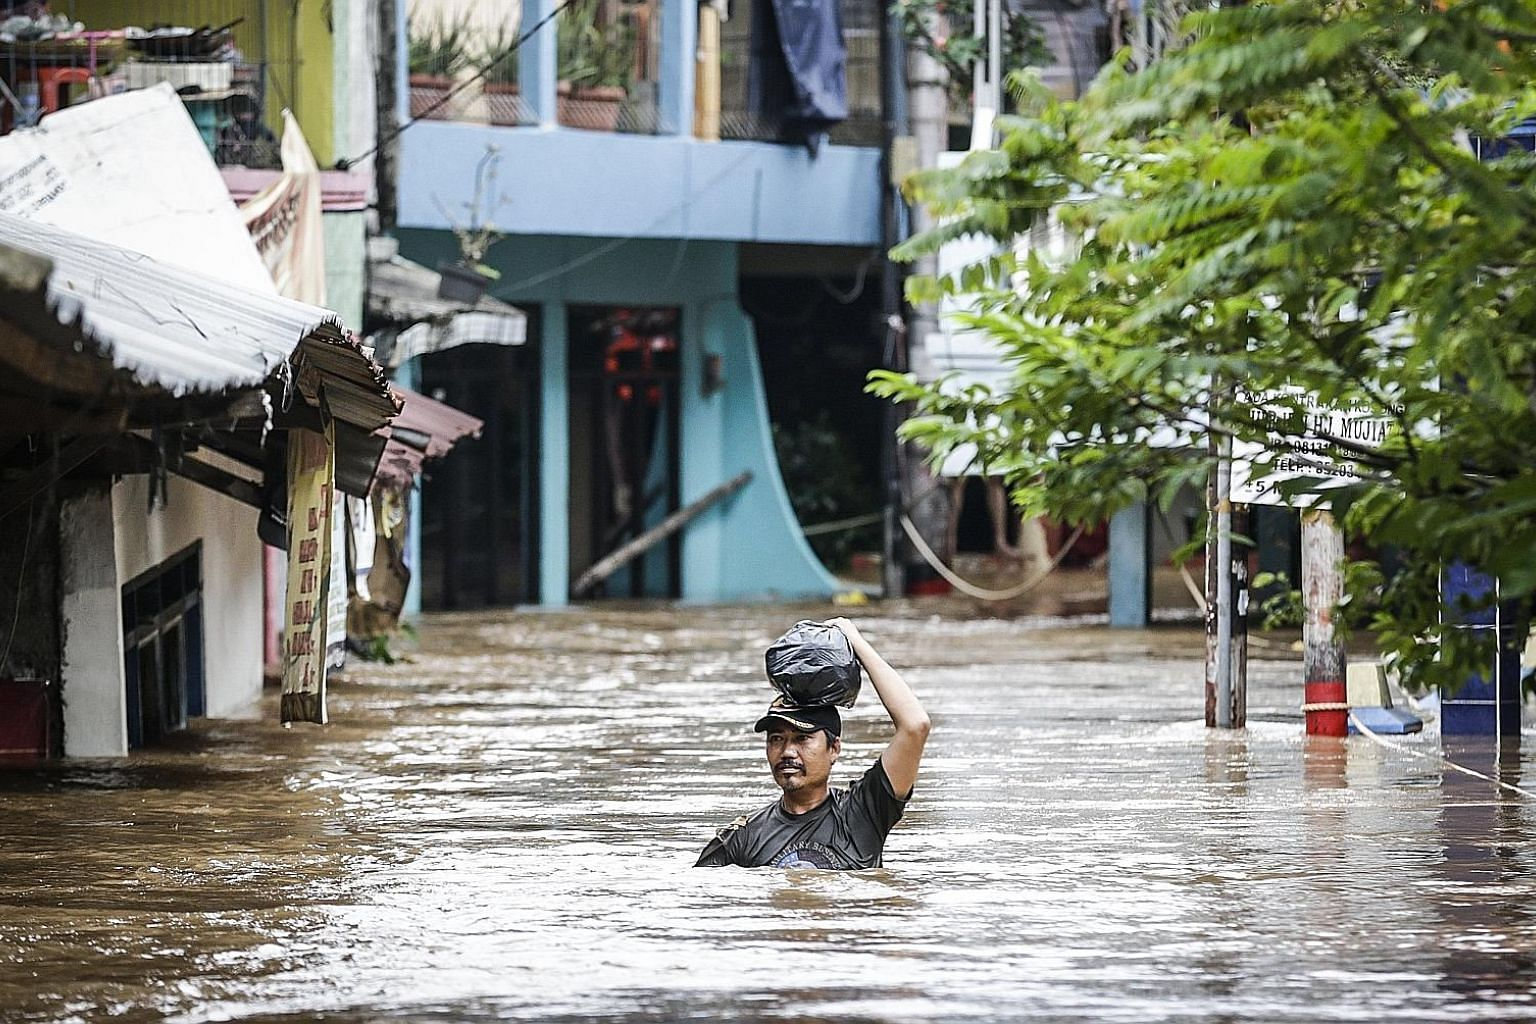 A heavy downpour in Jakarta that started on Monday has unleashed one of the city's worst floods in recent years, causing many to evacuate and schools to shut. There have been no fatalities, although there were about 480 emergency reports related to t